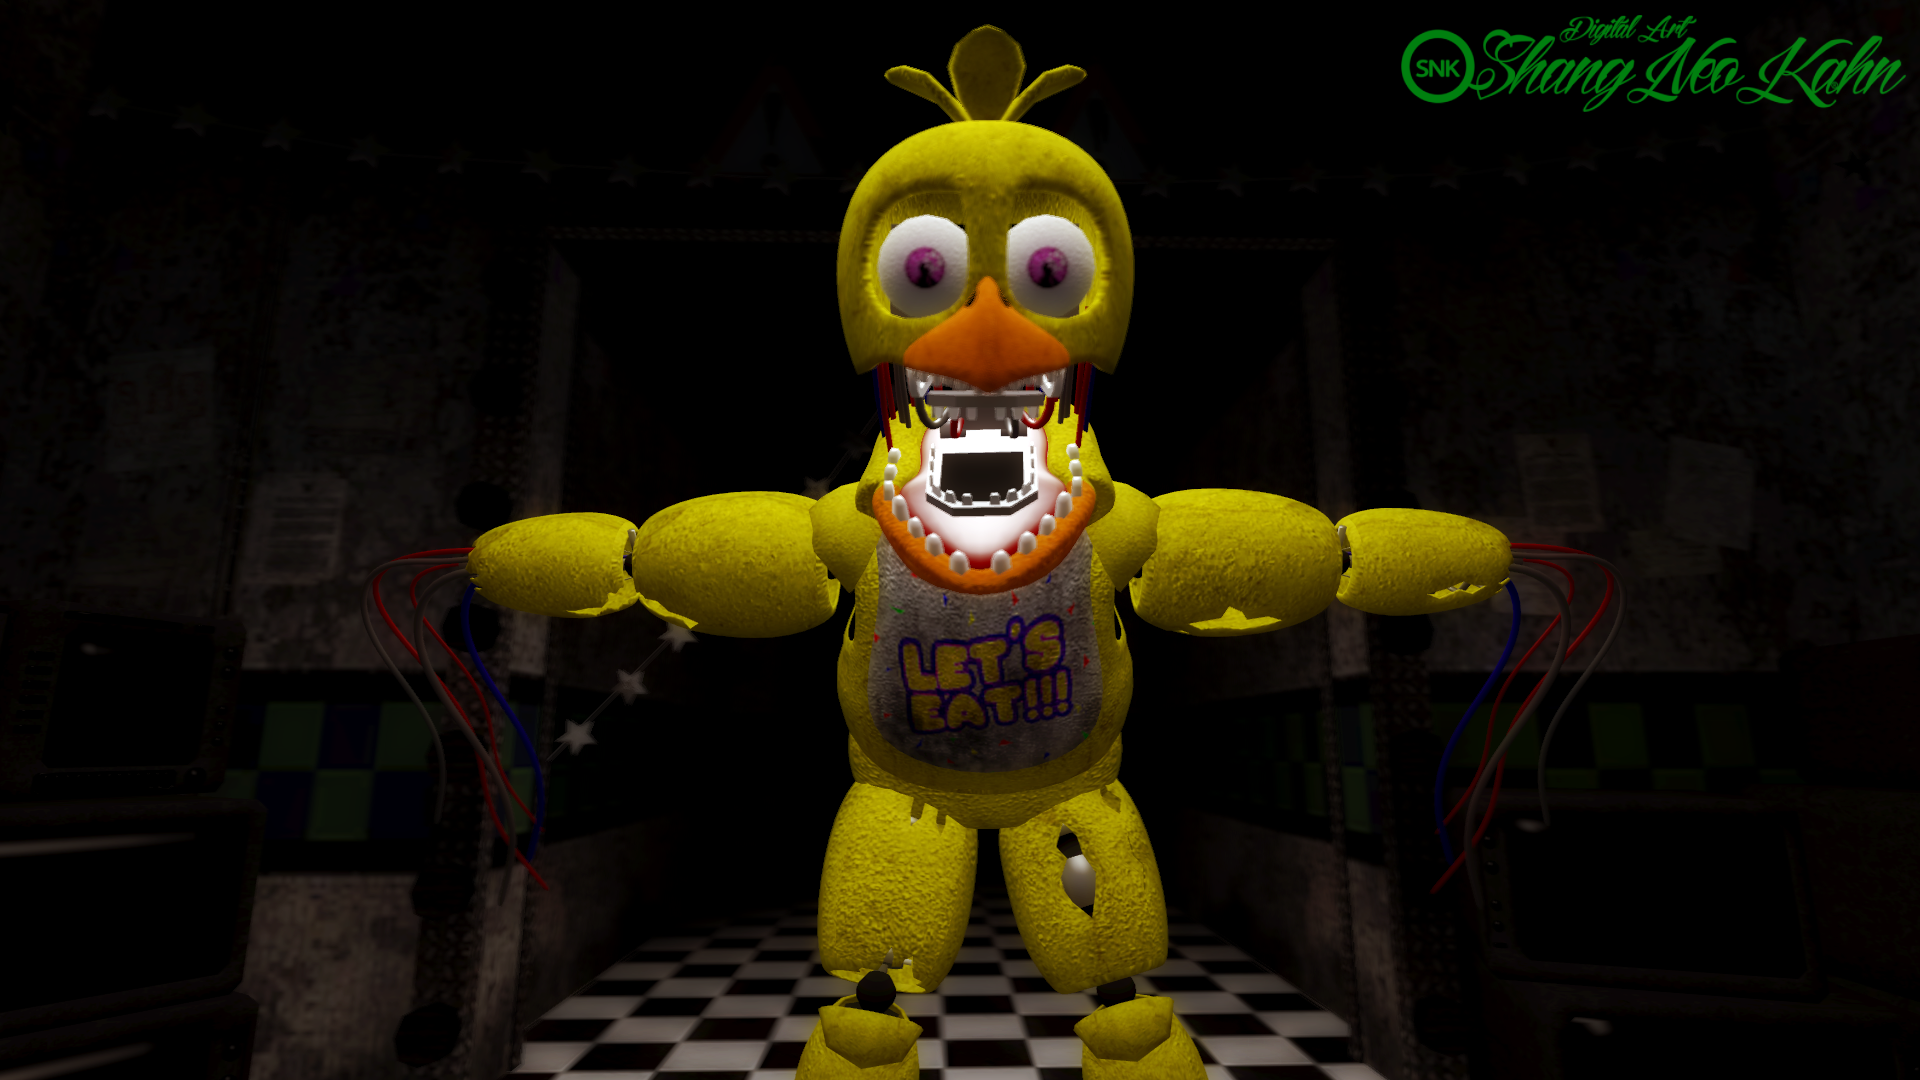 Sfm fnaf 2 withered chica by johnny cortex on deviantart